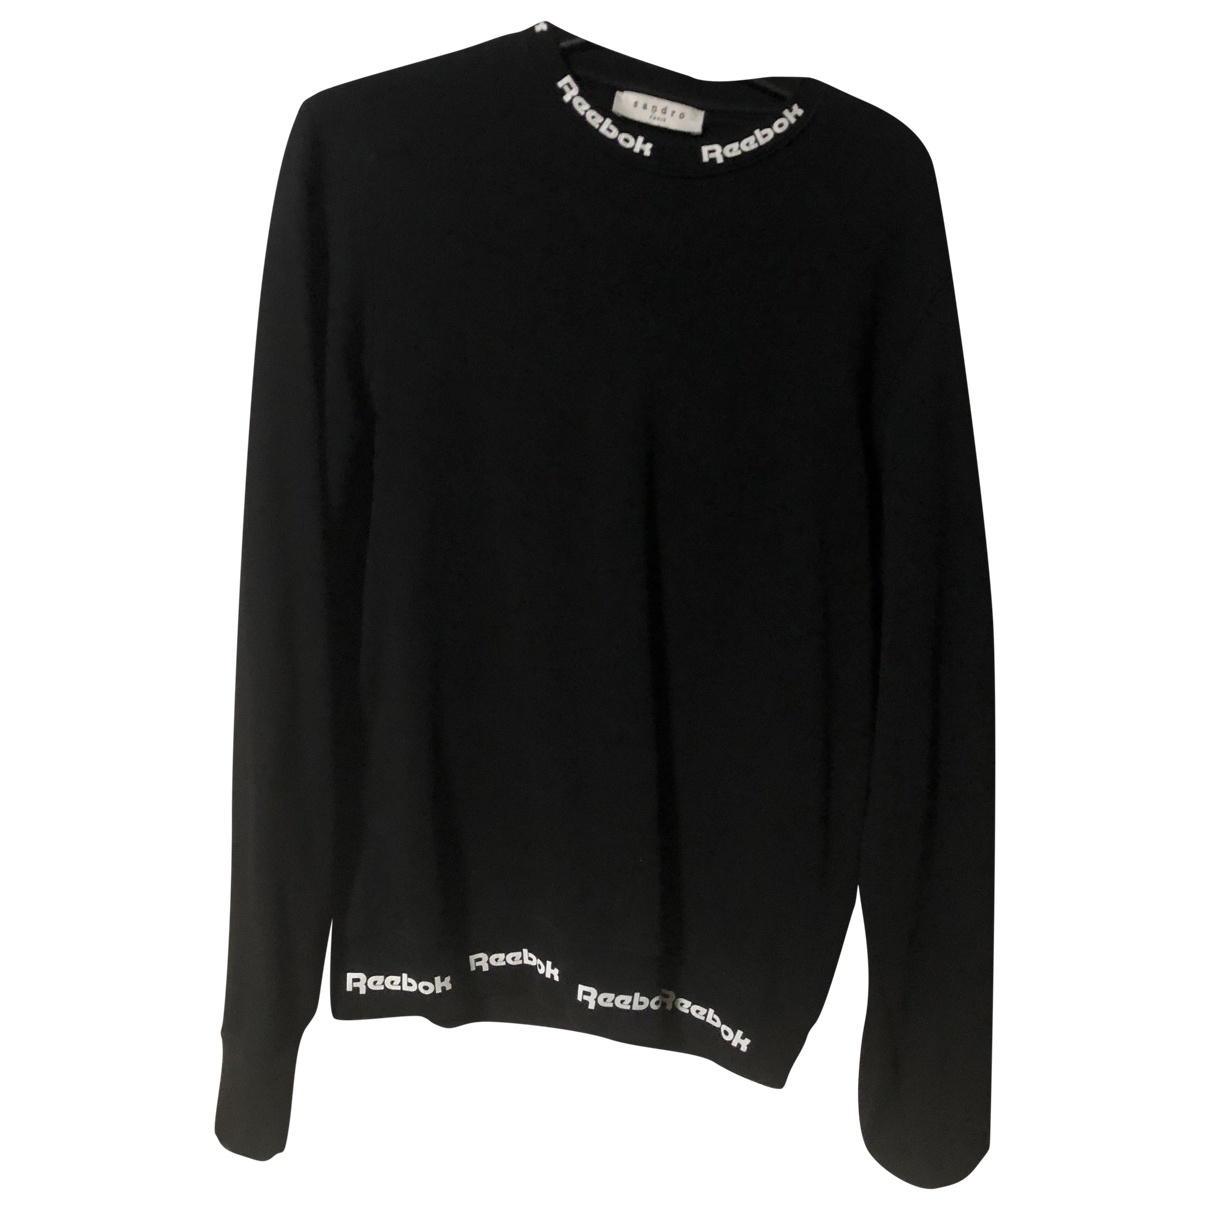 Sandro \N Black Cotton Knitwear & Sweatshirts for Men S International